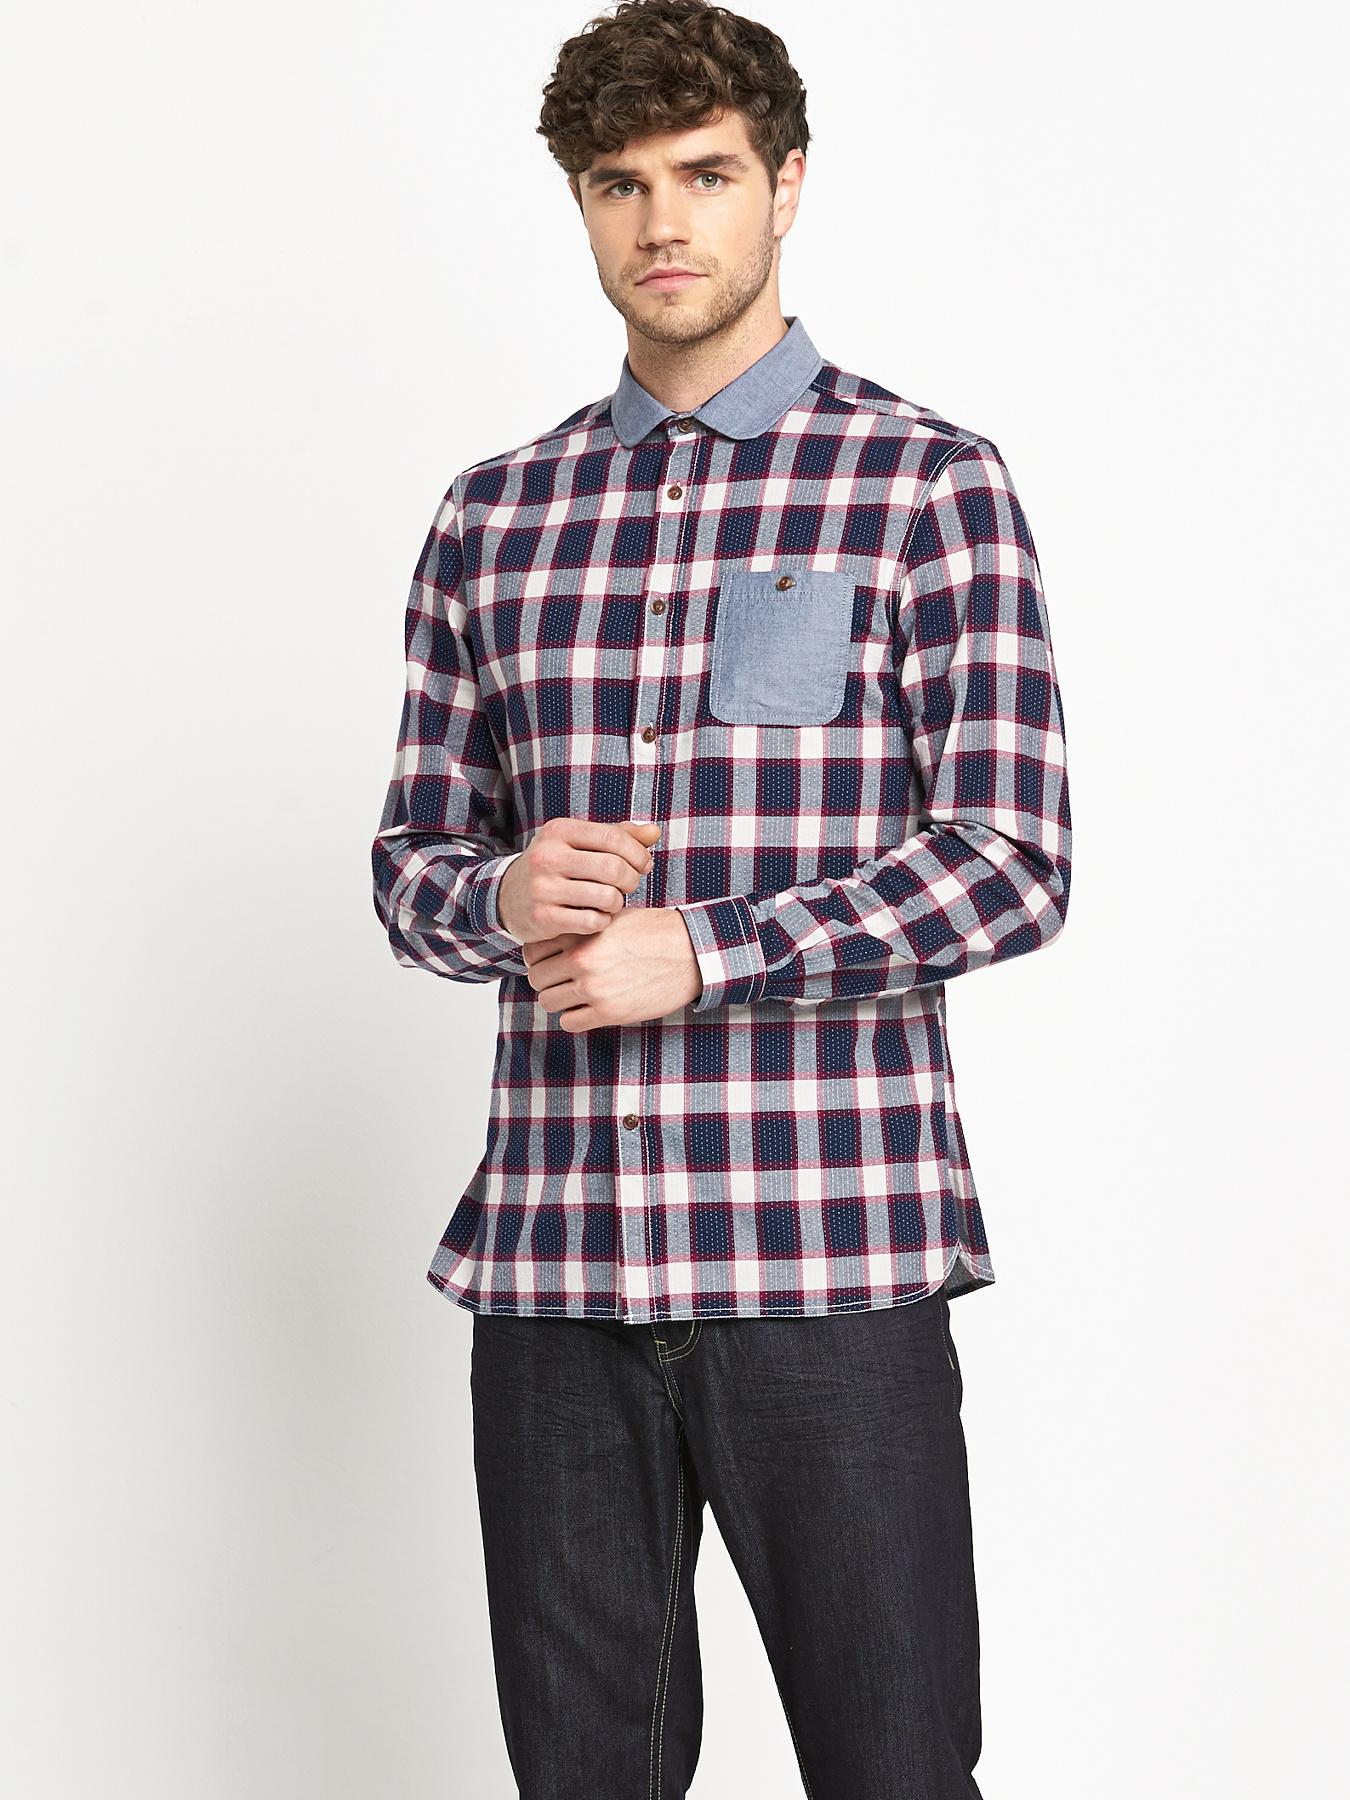 Goodsouls Mens Long Sleeve Penny Collar Check Shirt - Navy, Navy